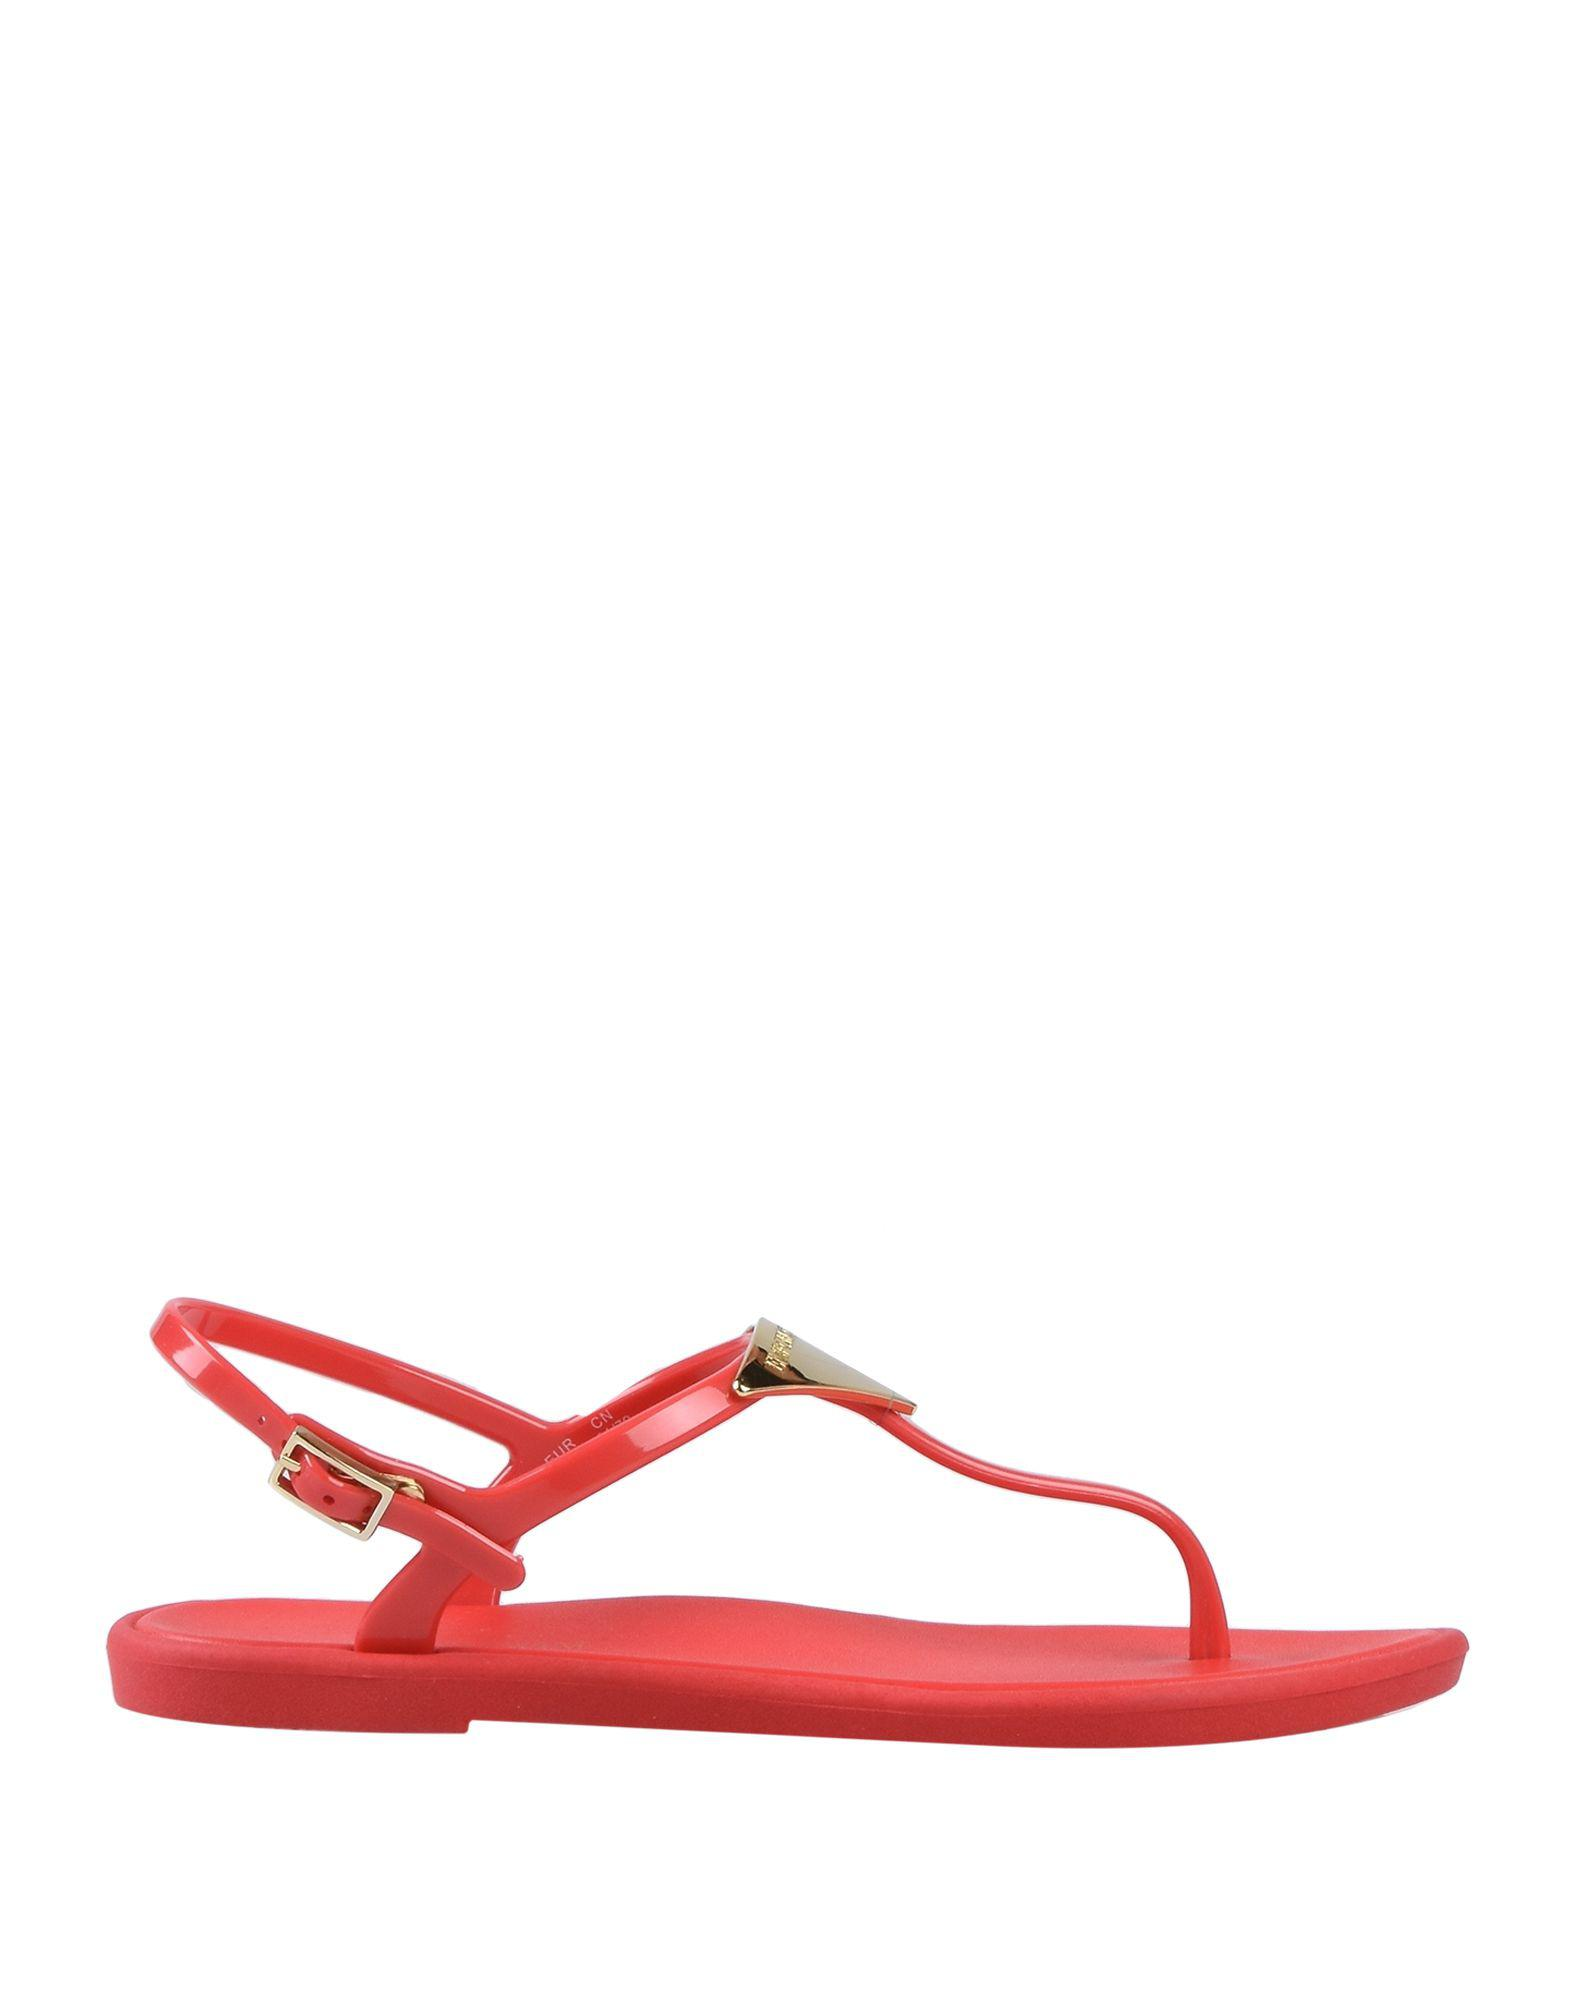 d280d499827d8 Lyst - Emporio Armani Sandals in Red